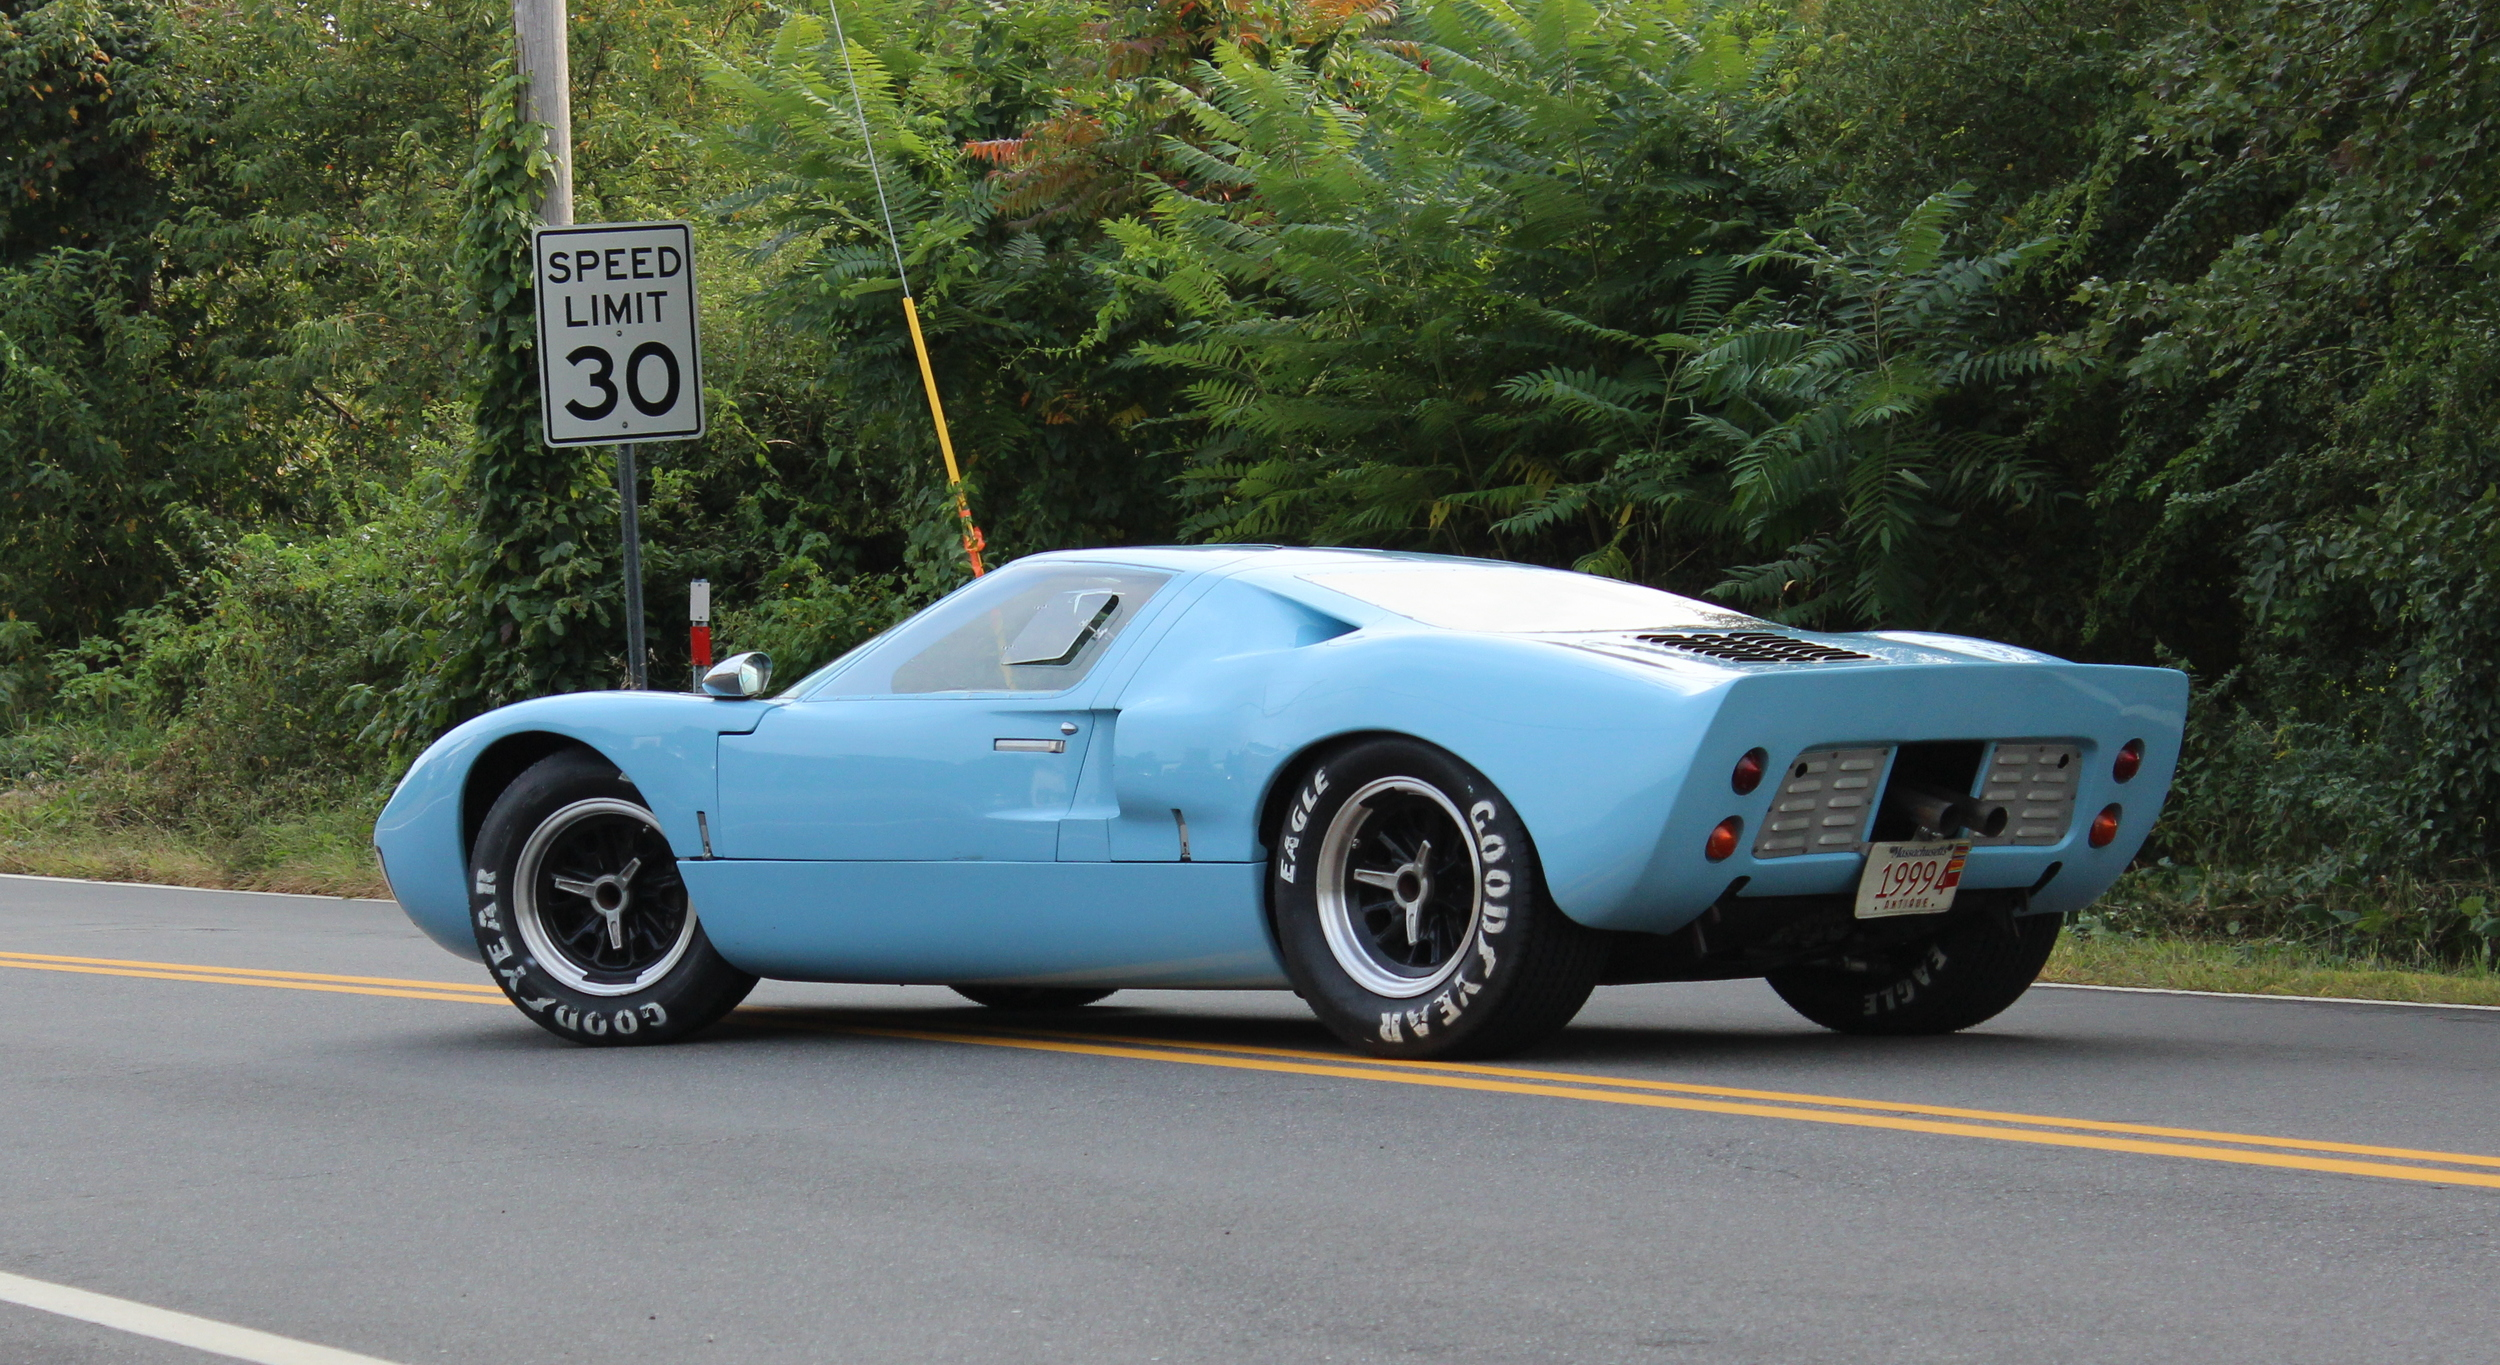 1966 GT-40 Small Block, one of the Shell parachute cars